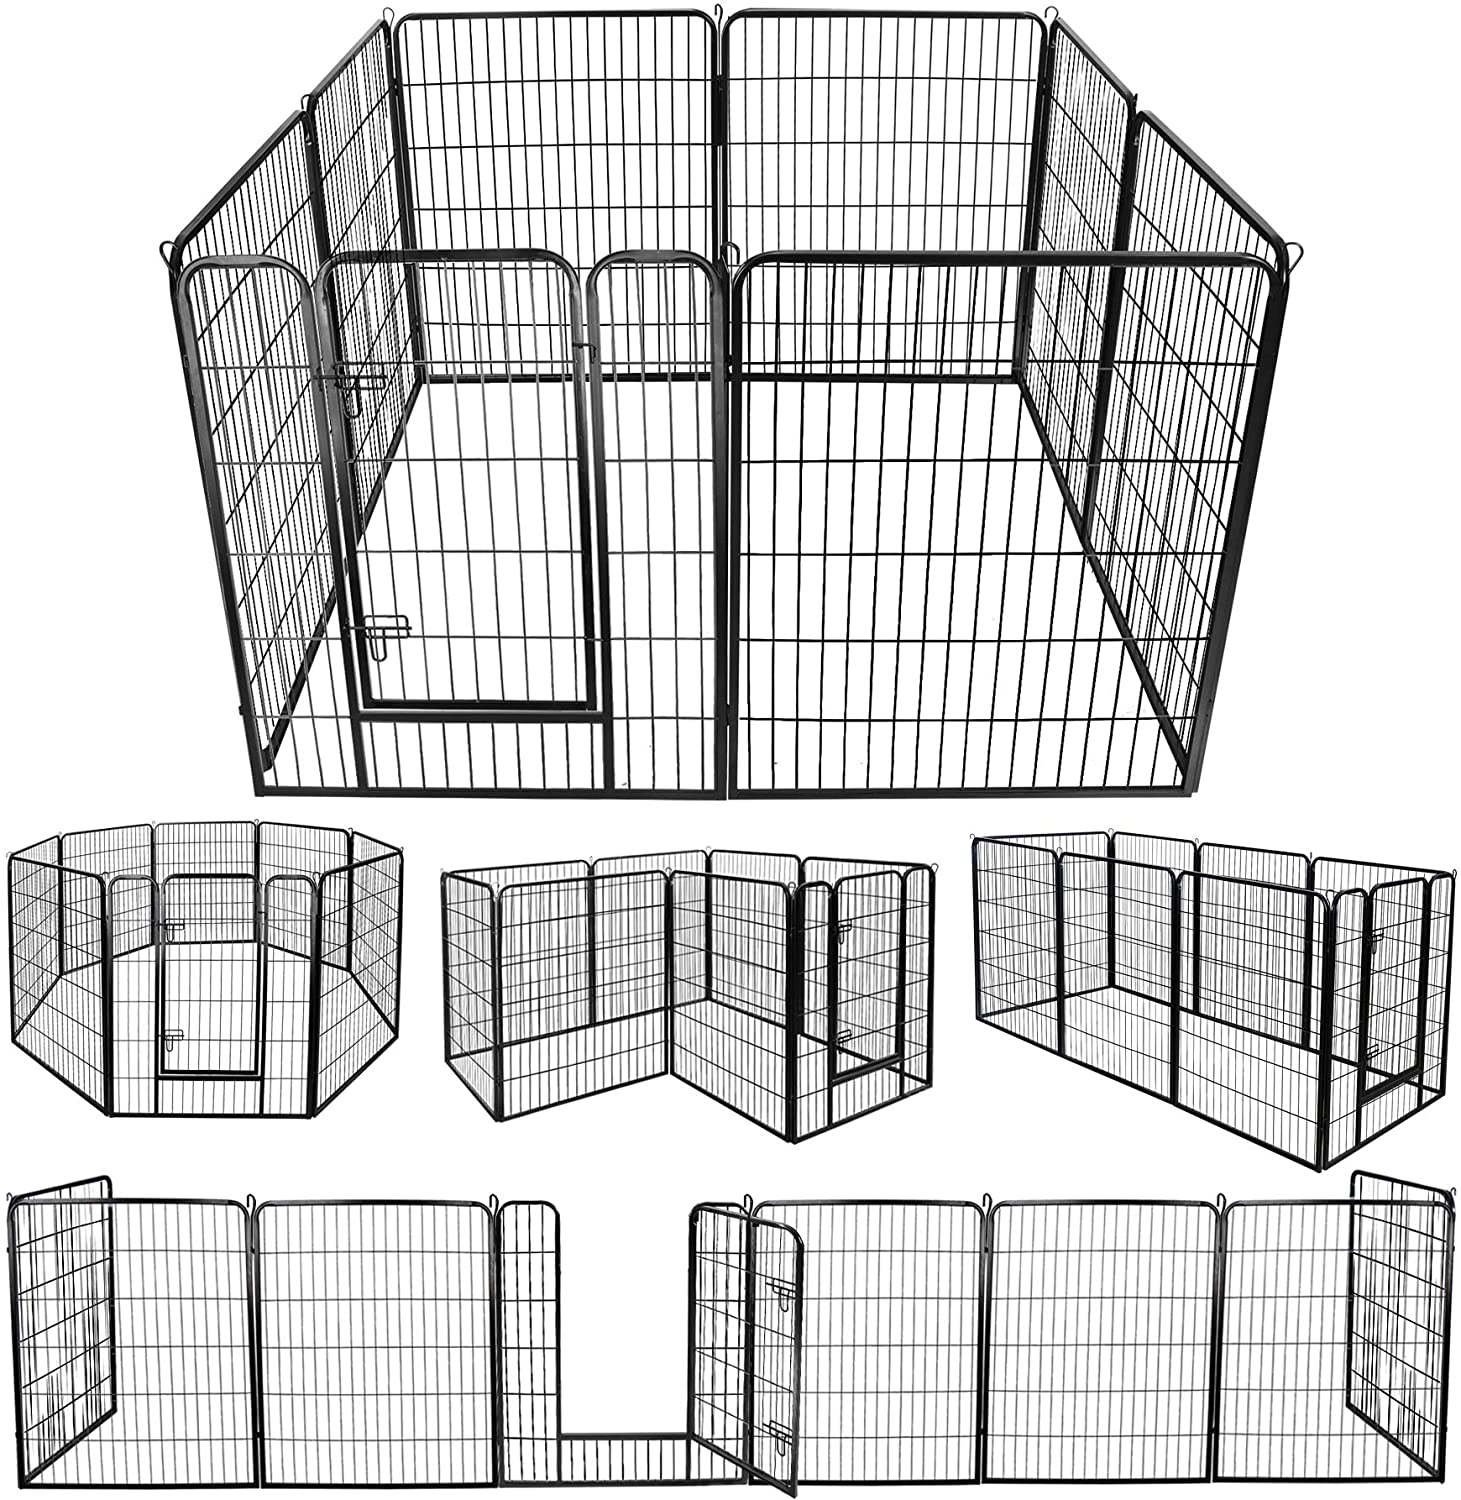 ZENY Foldable Metal Exercise Pen Pet Playpen Puppy Cat Exercise Fence Barrier Playpen Kennel – 16 Panels 8 Panels 31.5 W x 39.4 H – 8 Panels